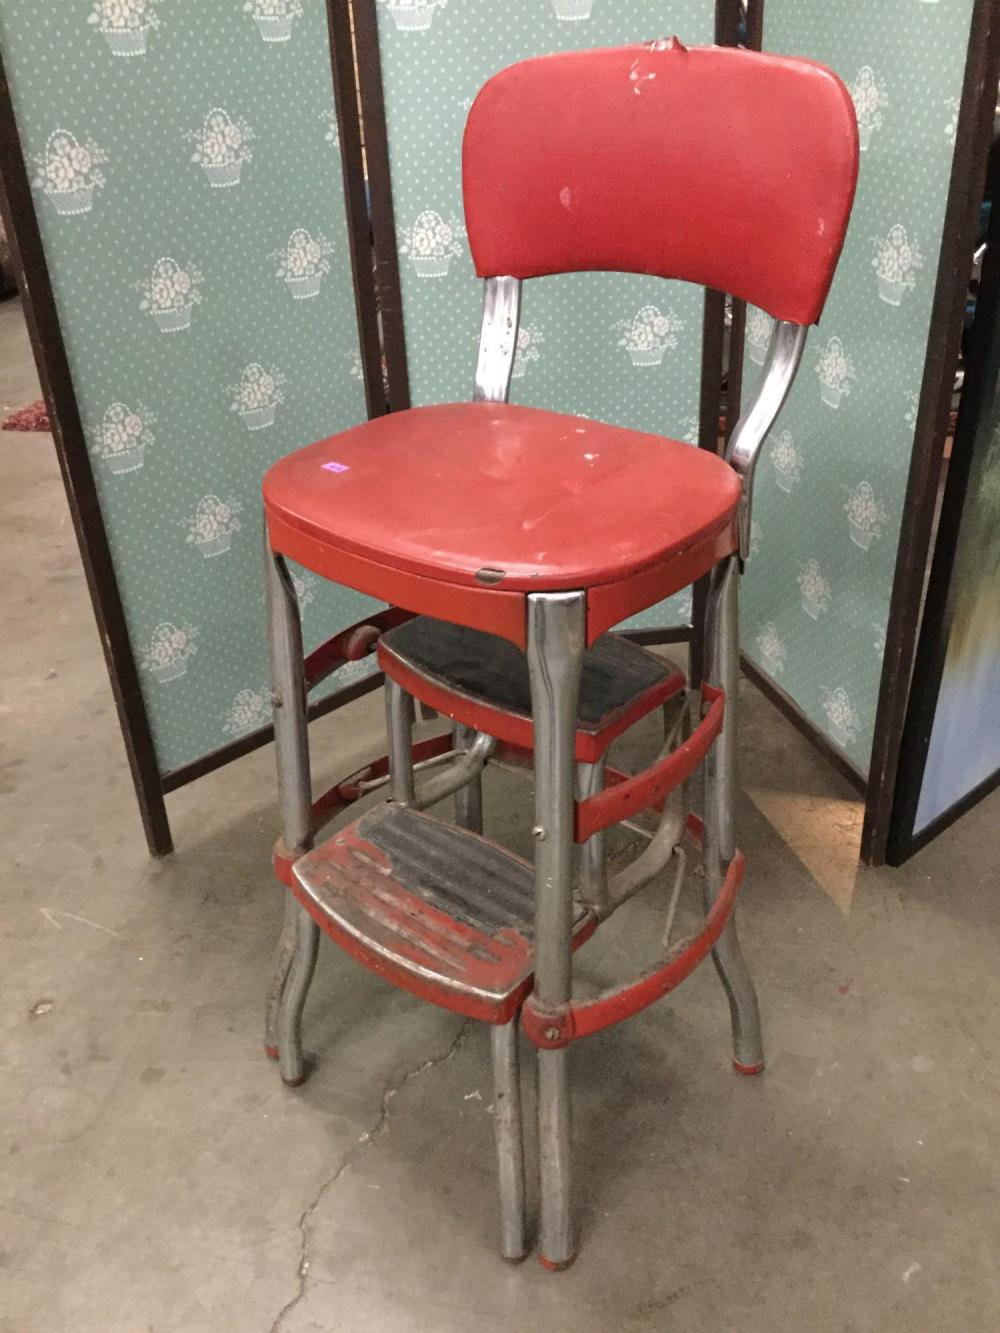 Cool Vintage Chrome And Red Vinyl Step Chair Machost Co Dining Chair Design Ideas Machostcouk